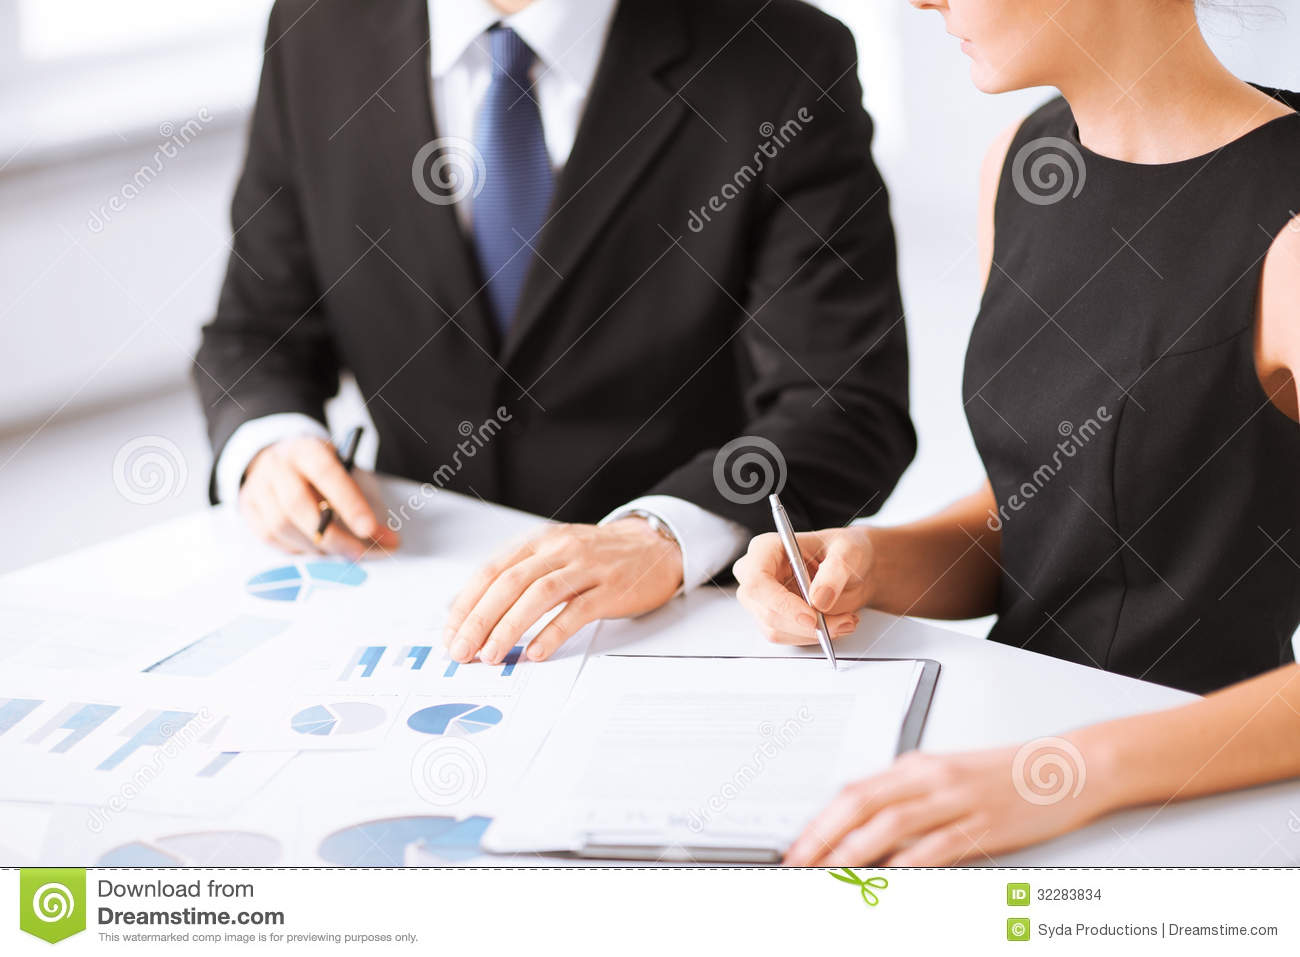 Business team on meeting discussing graphics